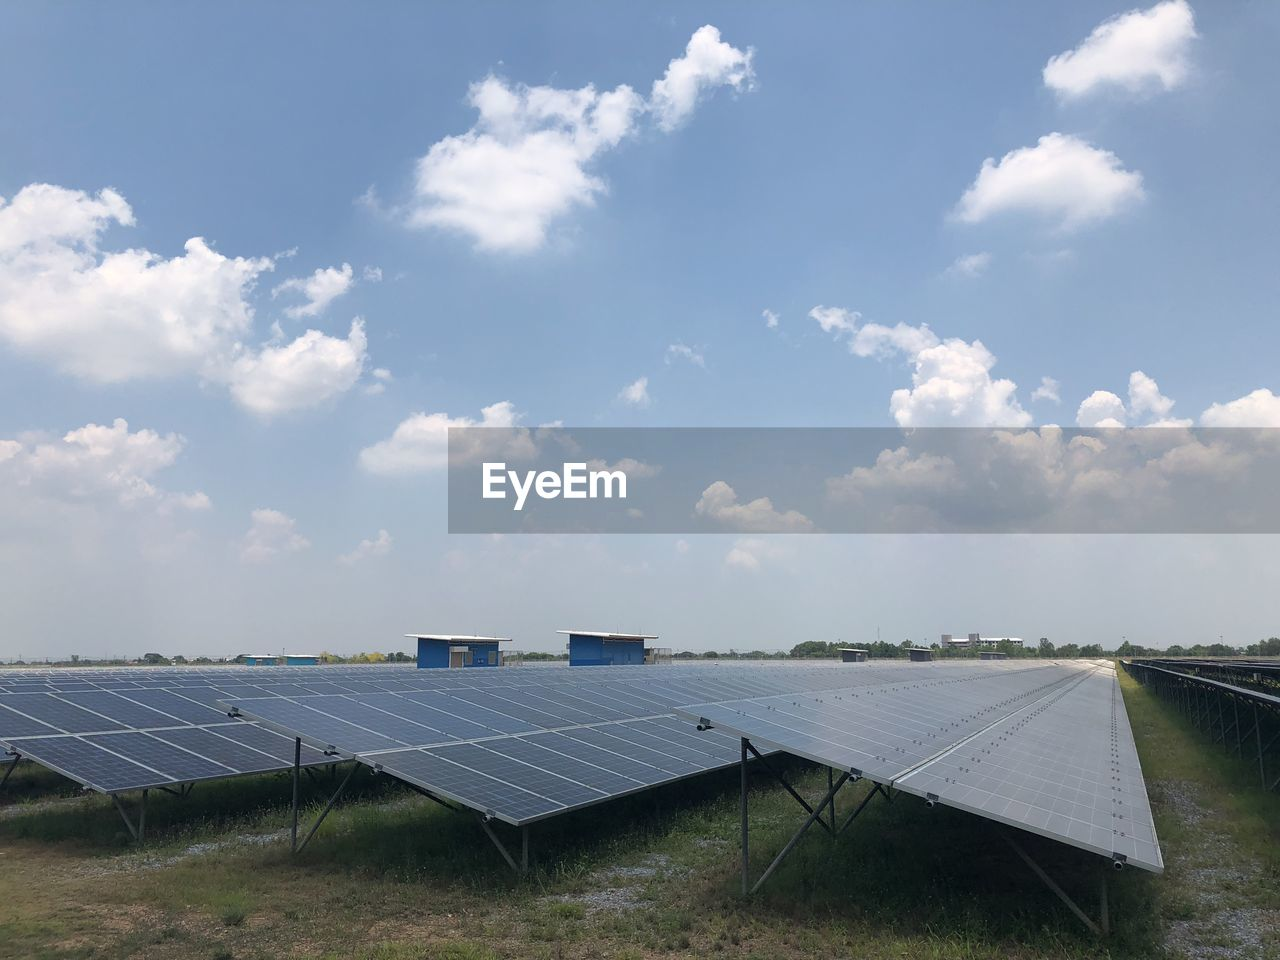 solar energy, solar panel, alternative energy, fuel and power generation, renewable energy, environmental conservation, environment, cloud - sky, sky, technology, solar equipment, nature, day, electricity, outdoors, sunlight, solar power station, field, no people, power supply, sustainable resources